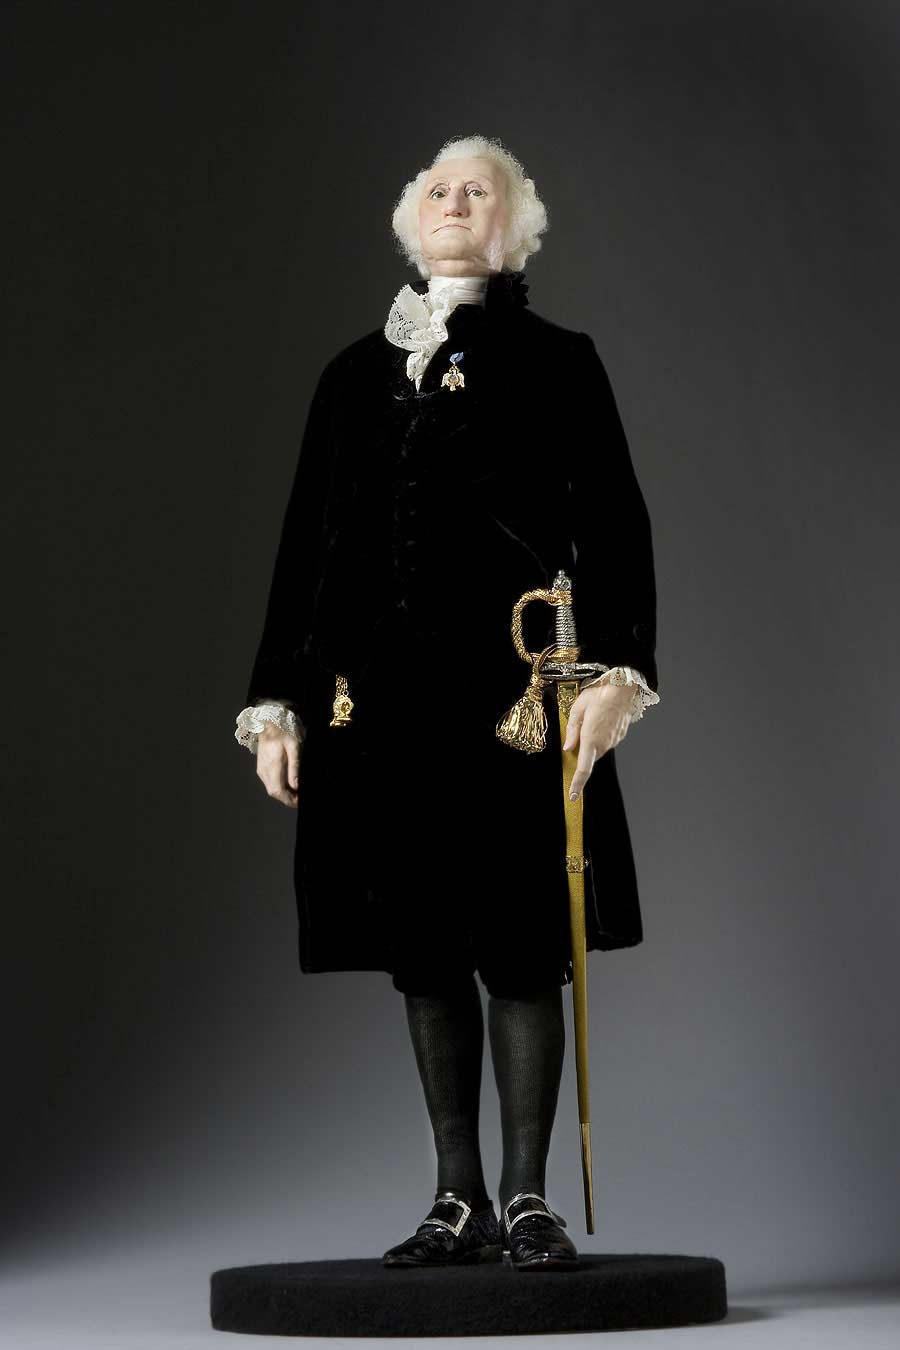 Full length color image of George Washington (President) aka.